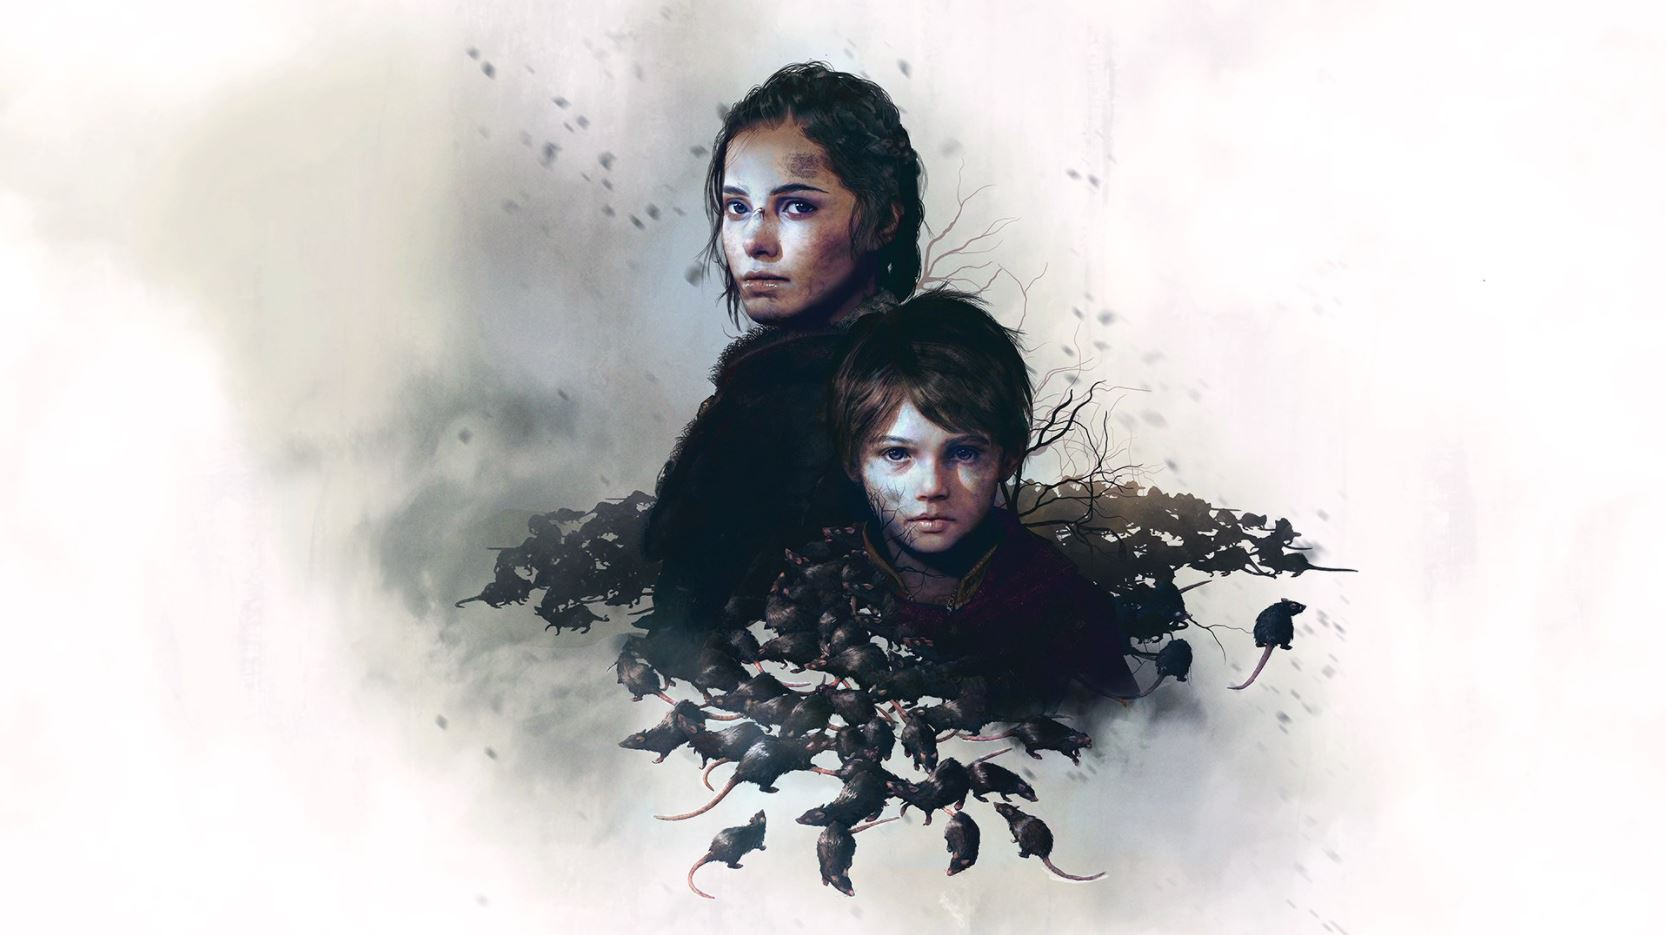 a-plague-tale-innocence-ps5-remaster-announced-with-upgrades-detailed-releasing-in-july